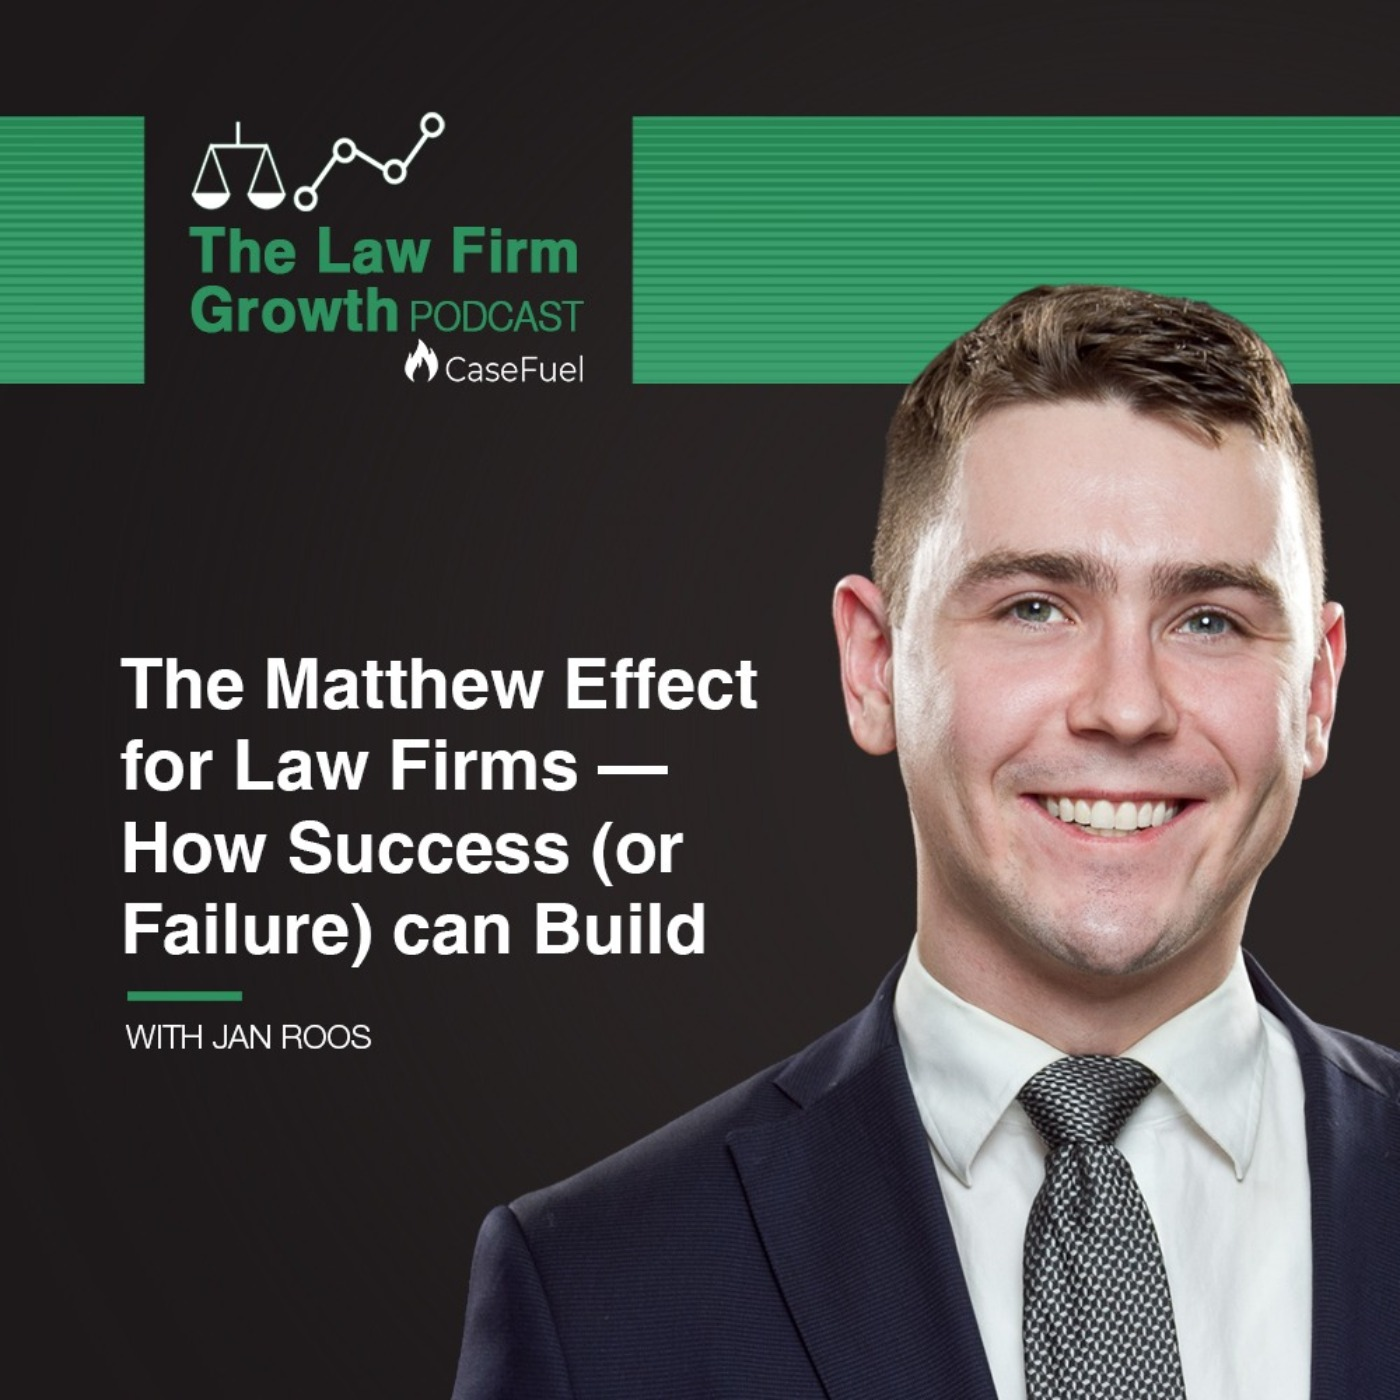 The Matthew Effect for Law Firms — How Success (or Failure) can Build